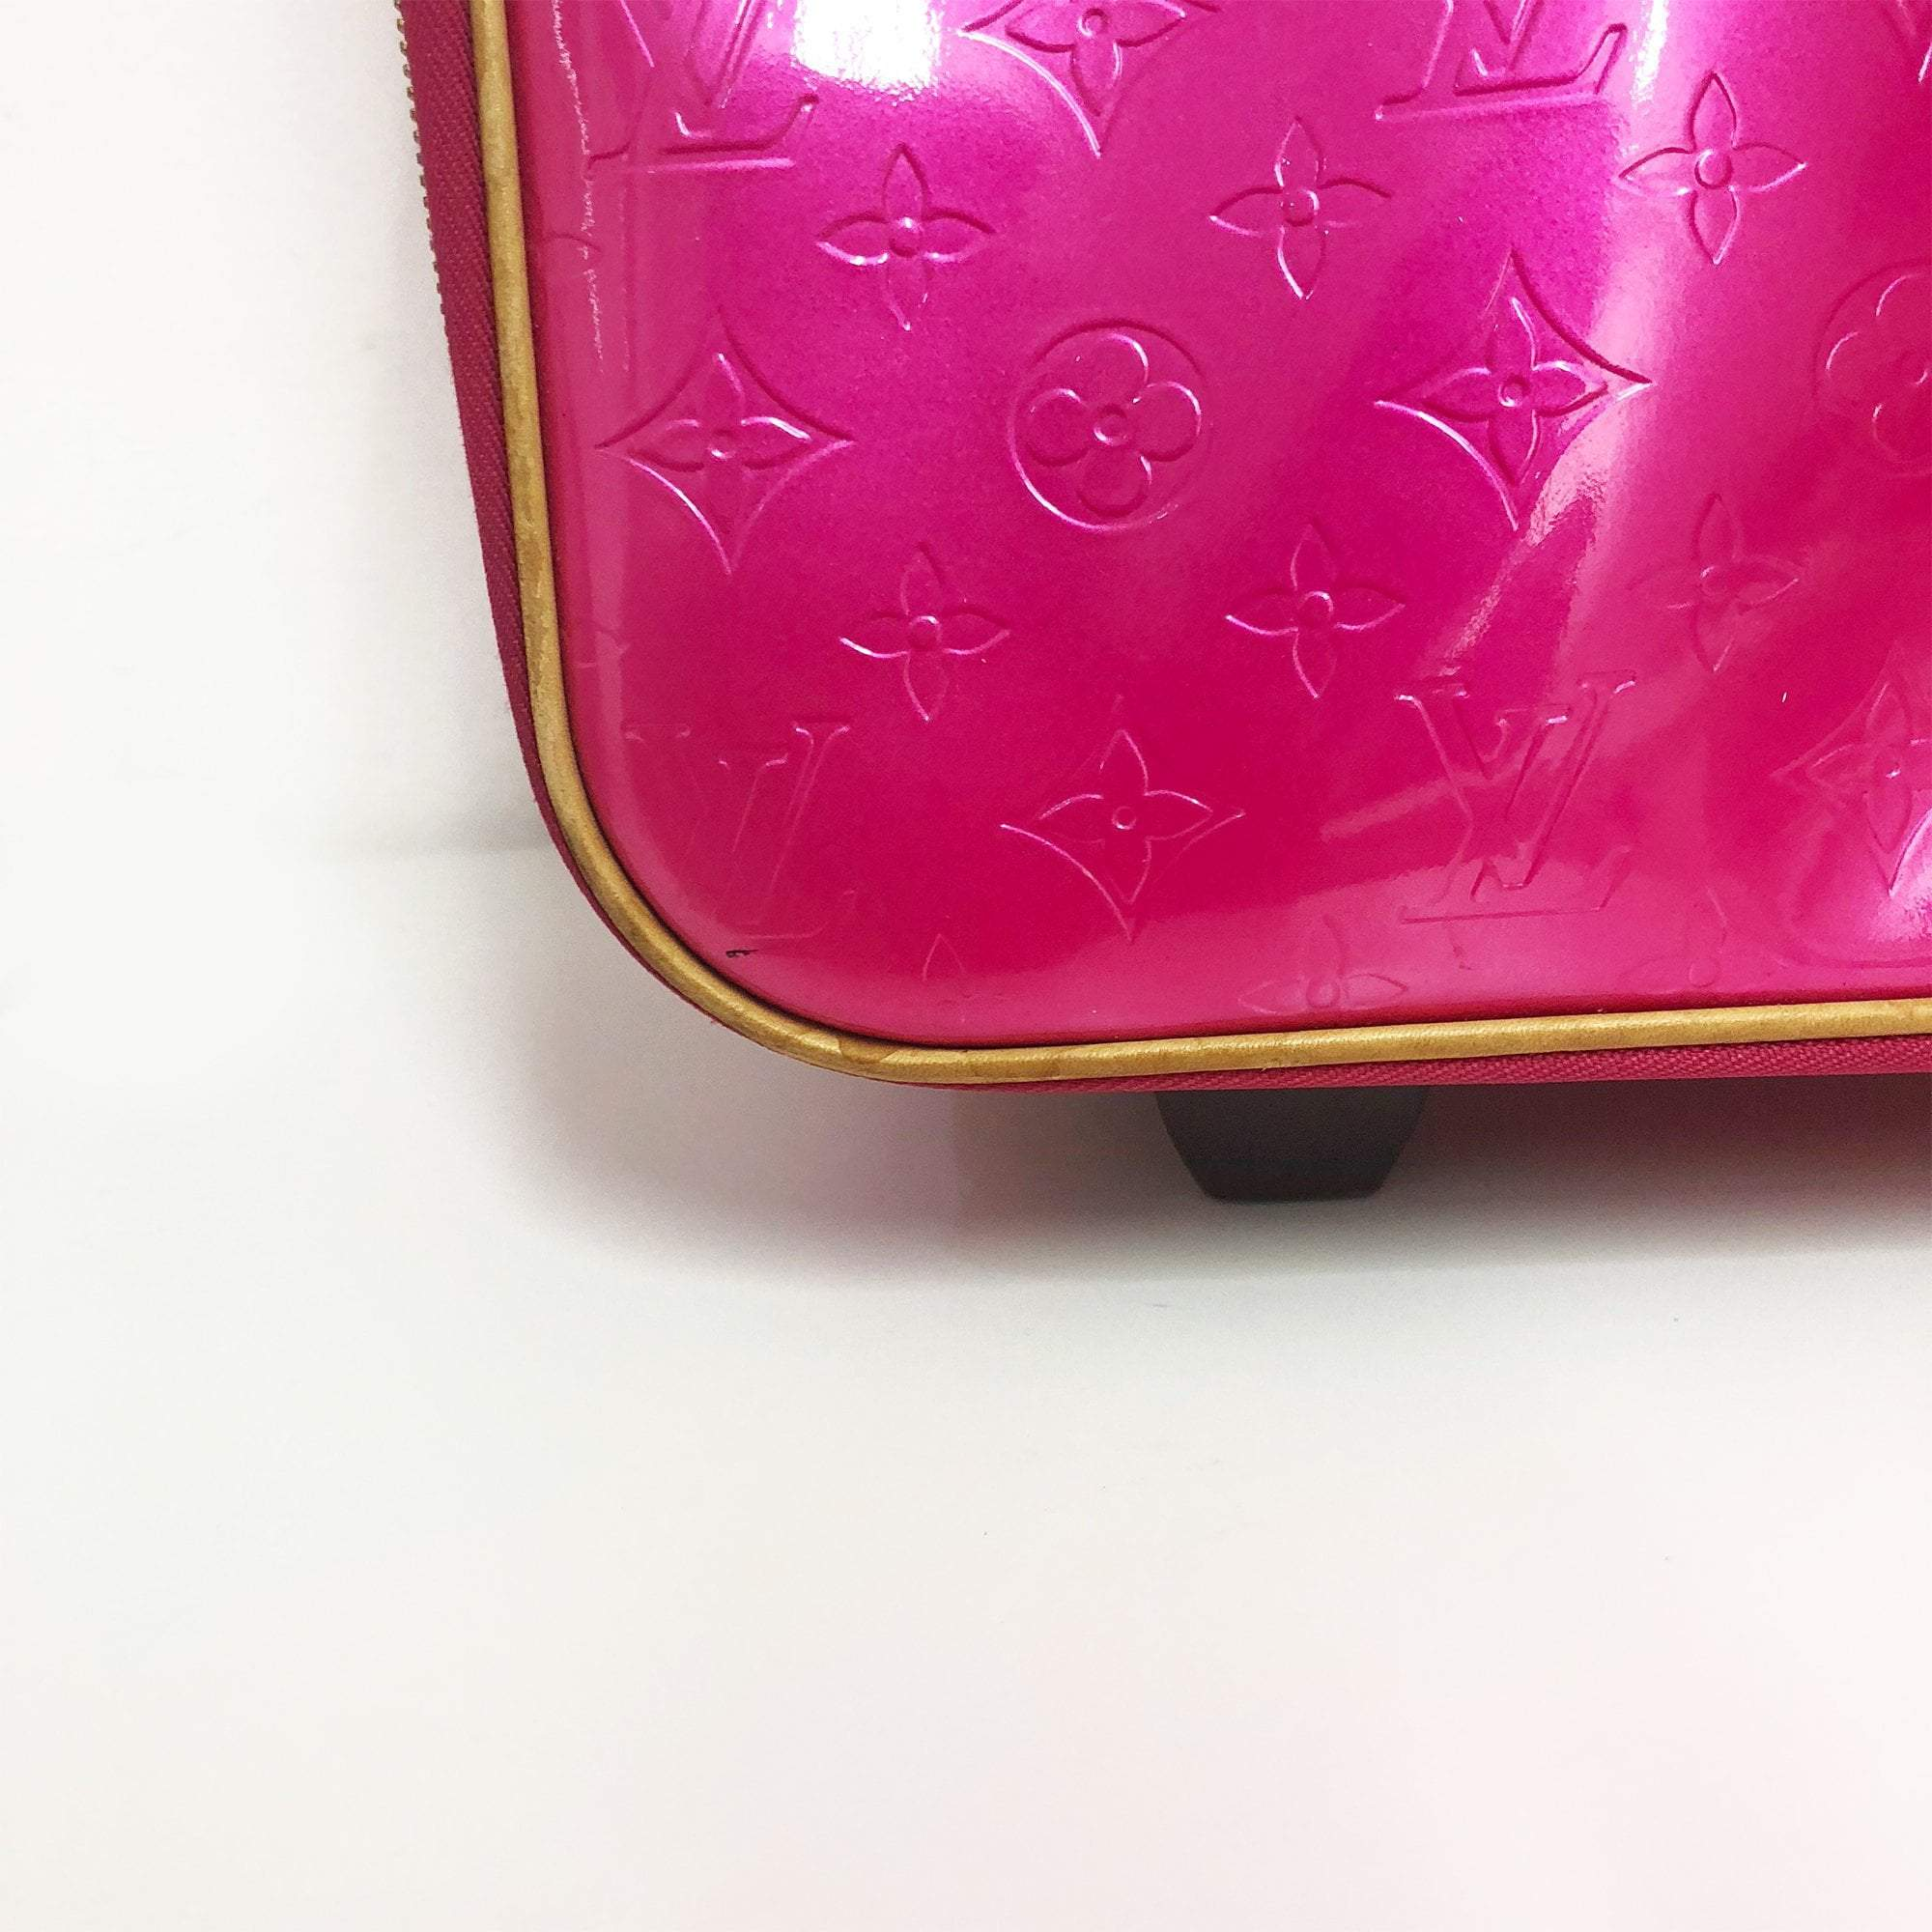 Louis Vuitton Pink Vernis Pegase 55 Luggage